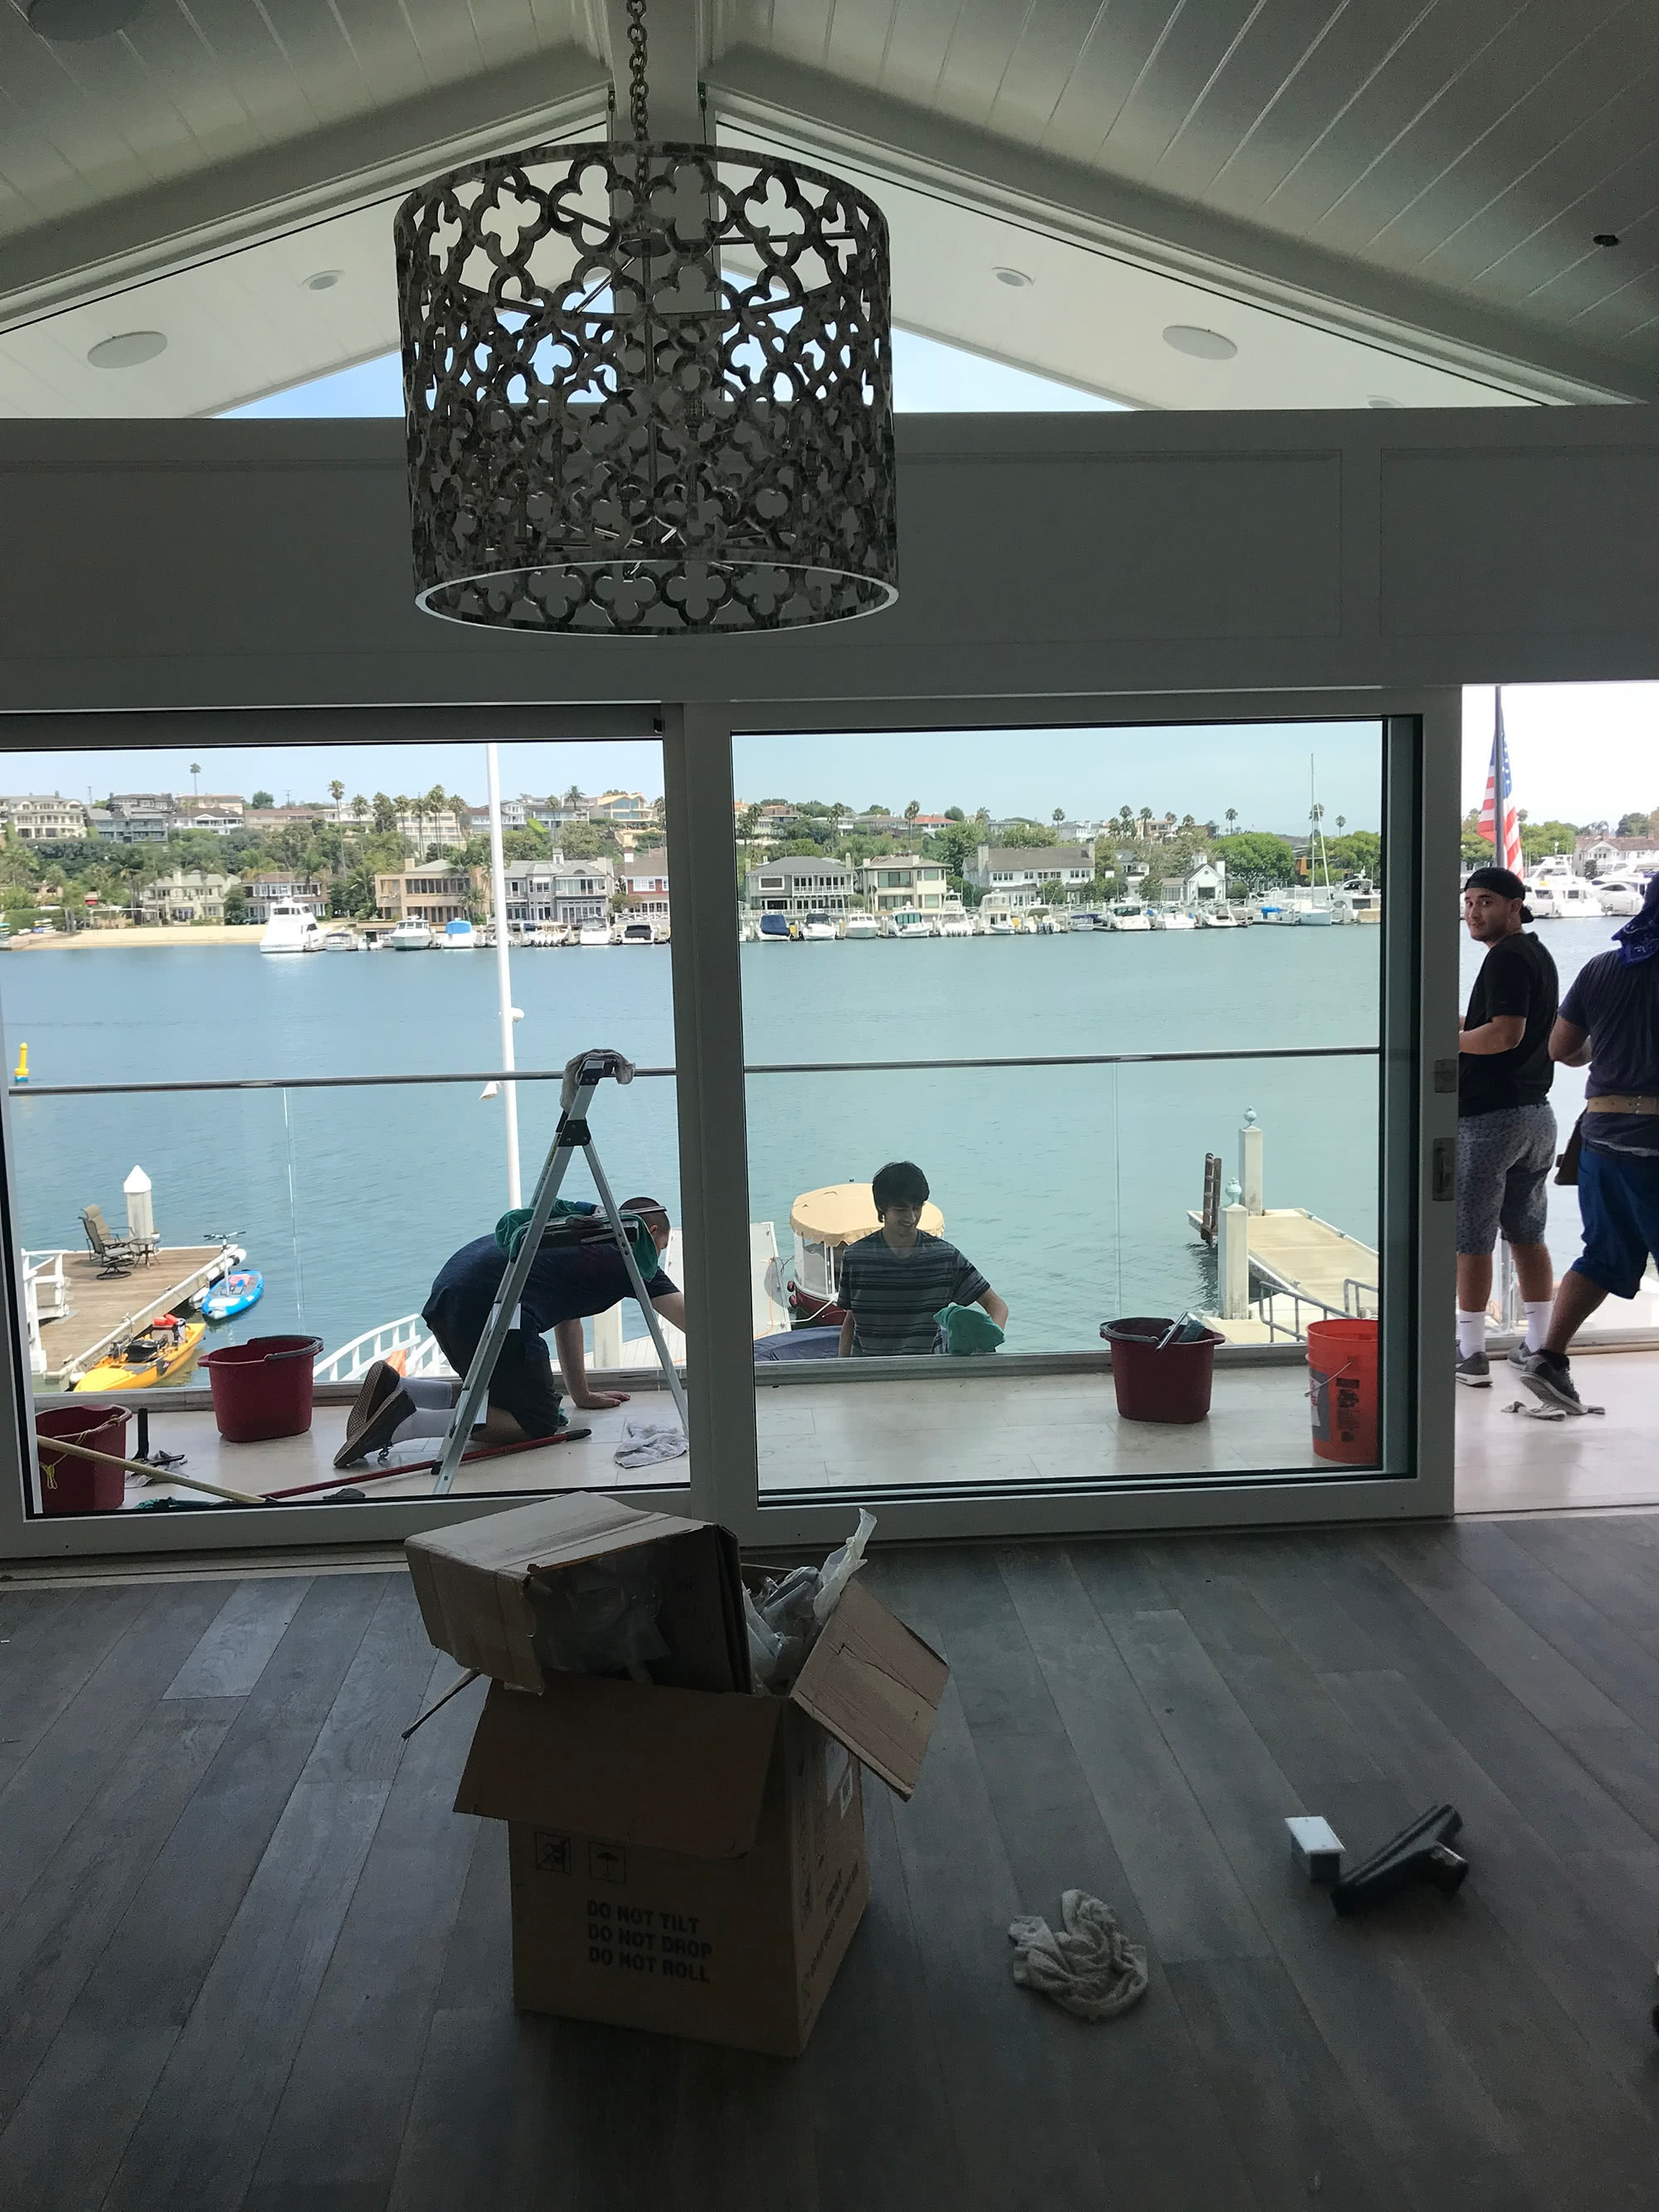 Plumbing Remodel on Lido Island California